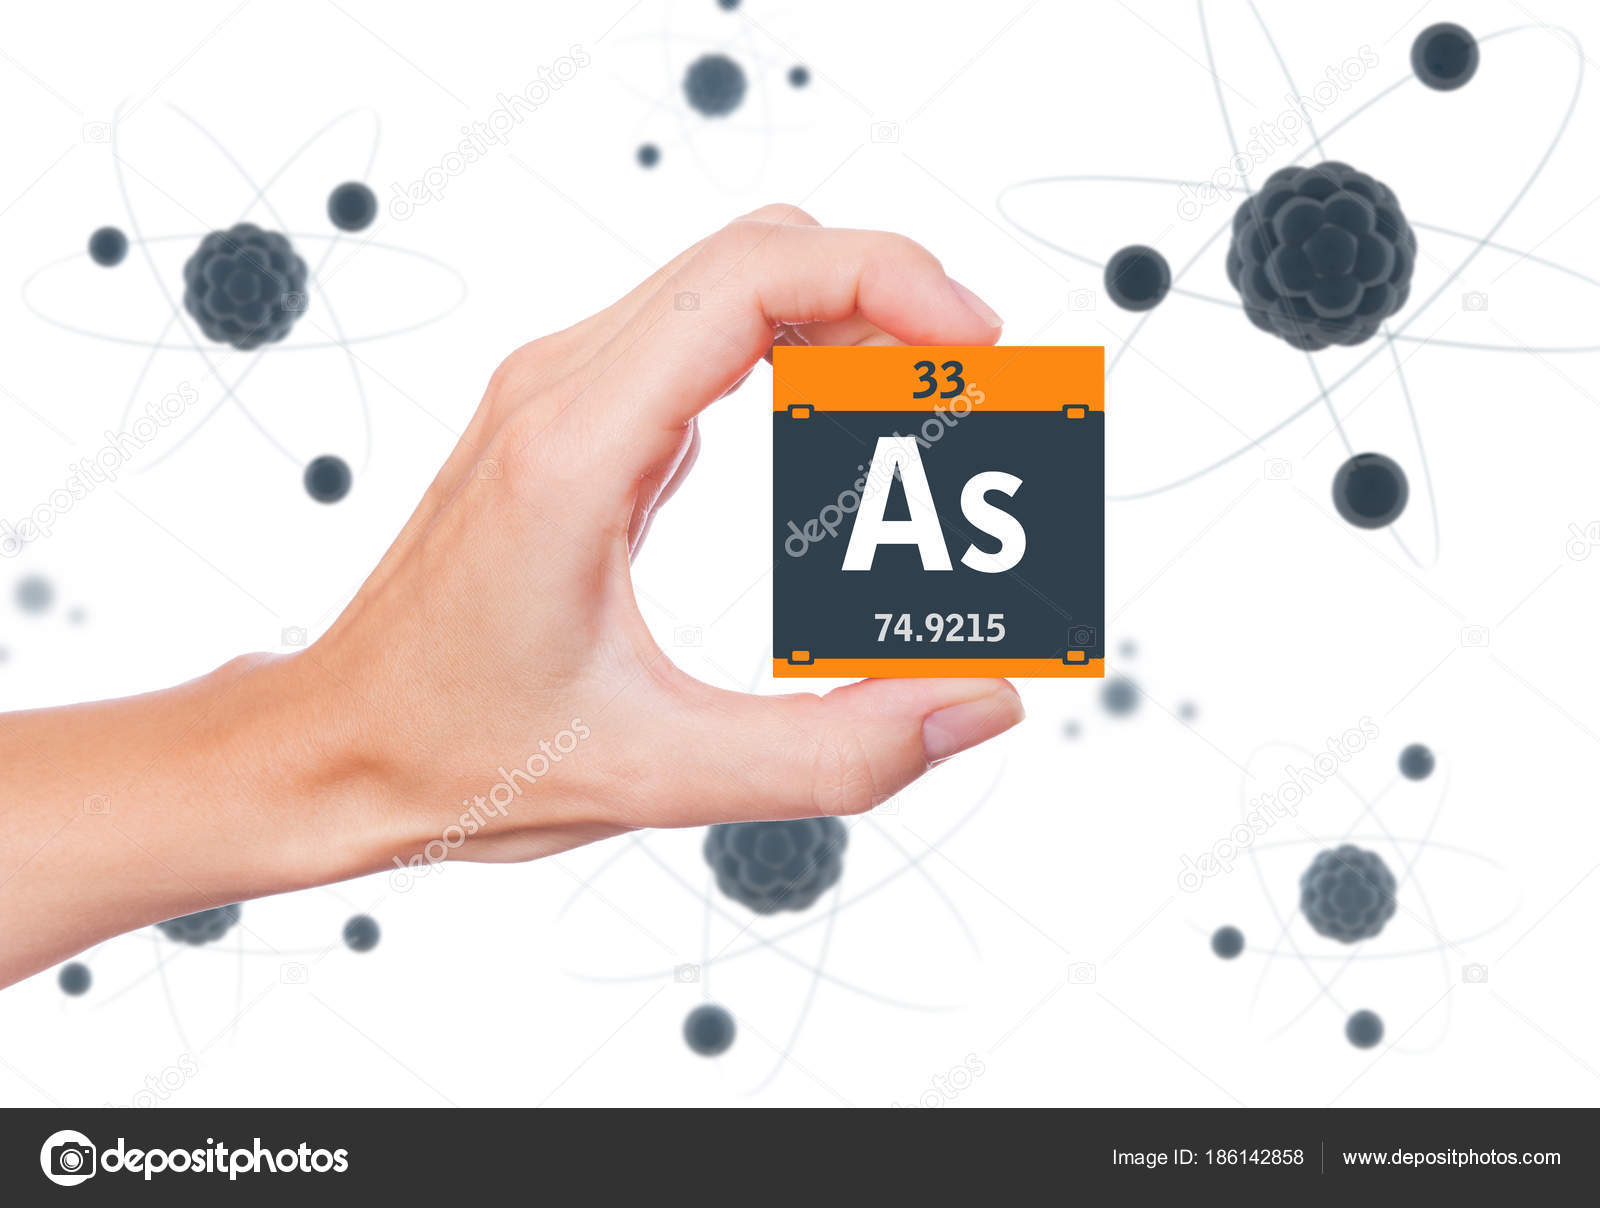 Arsenic element symbol handheld atoms floating background stock arsenic element symbol handheld atoms floating background stock photo biocorpaavc Image collections